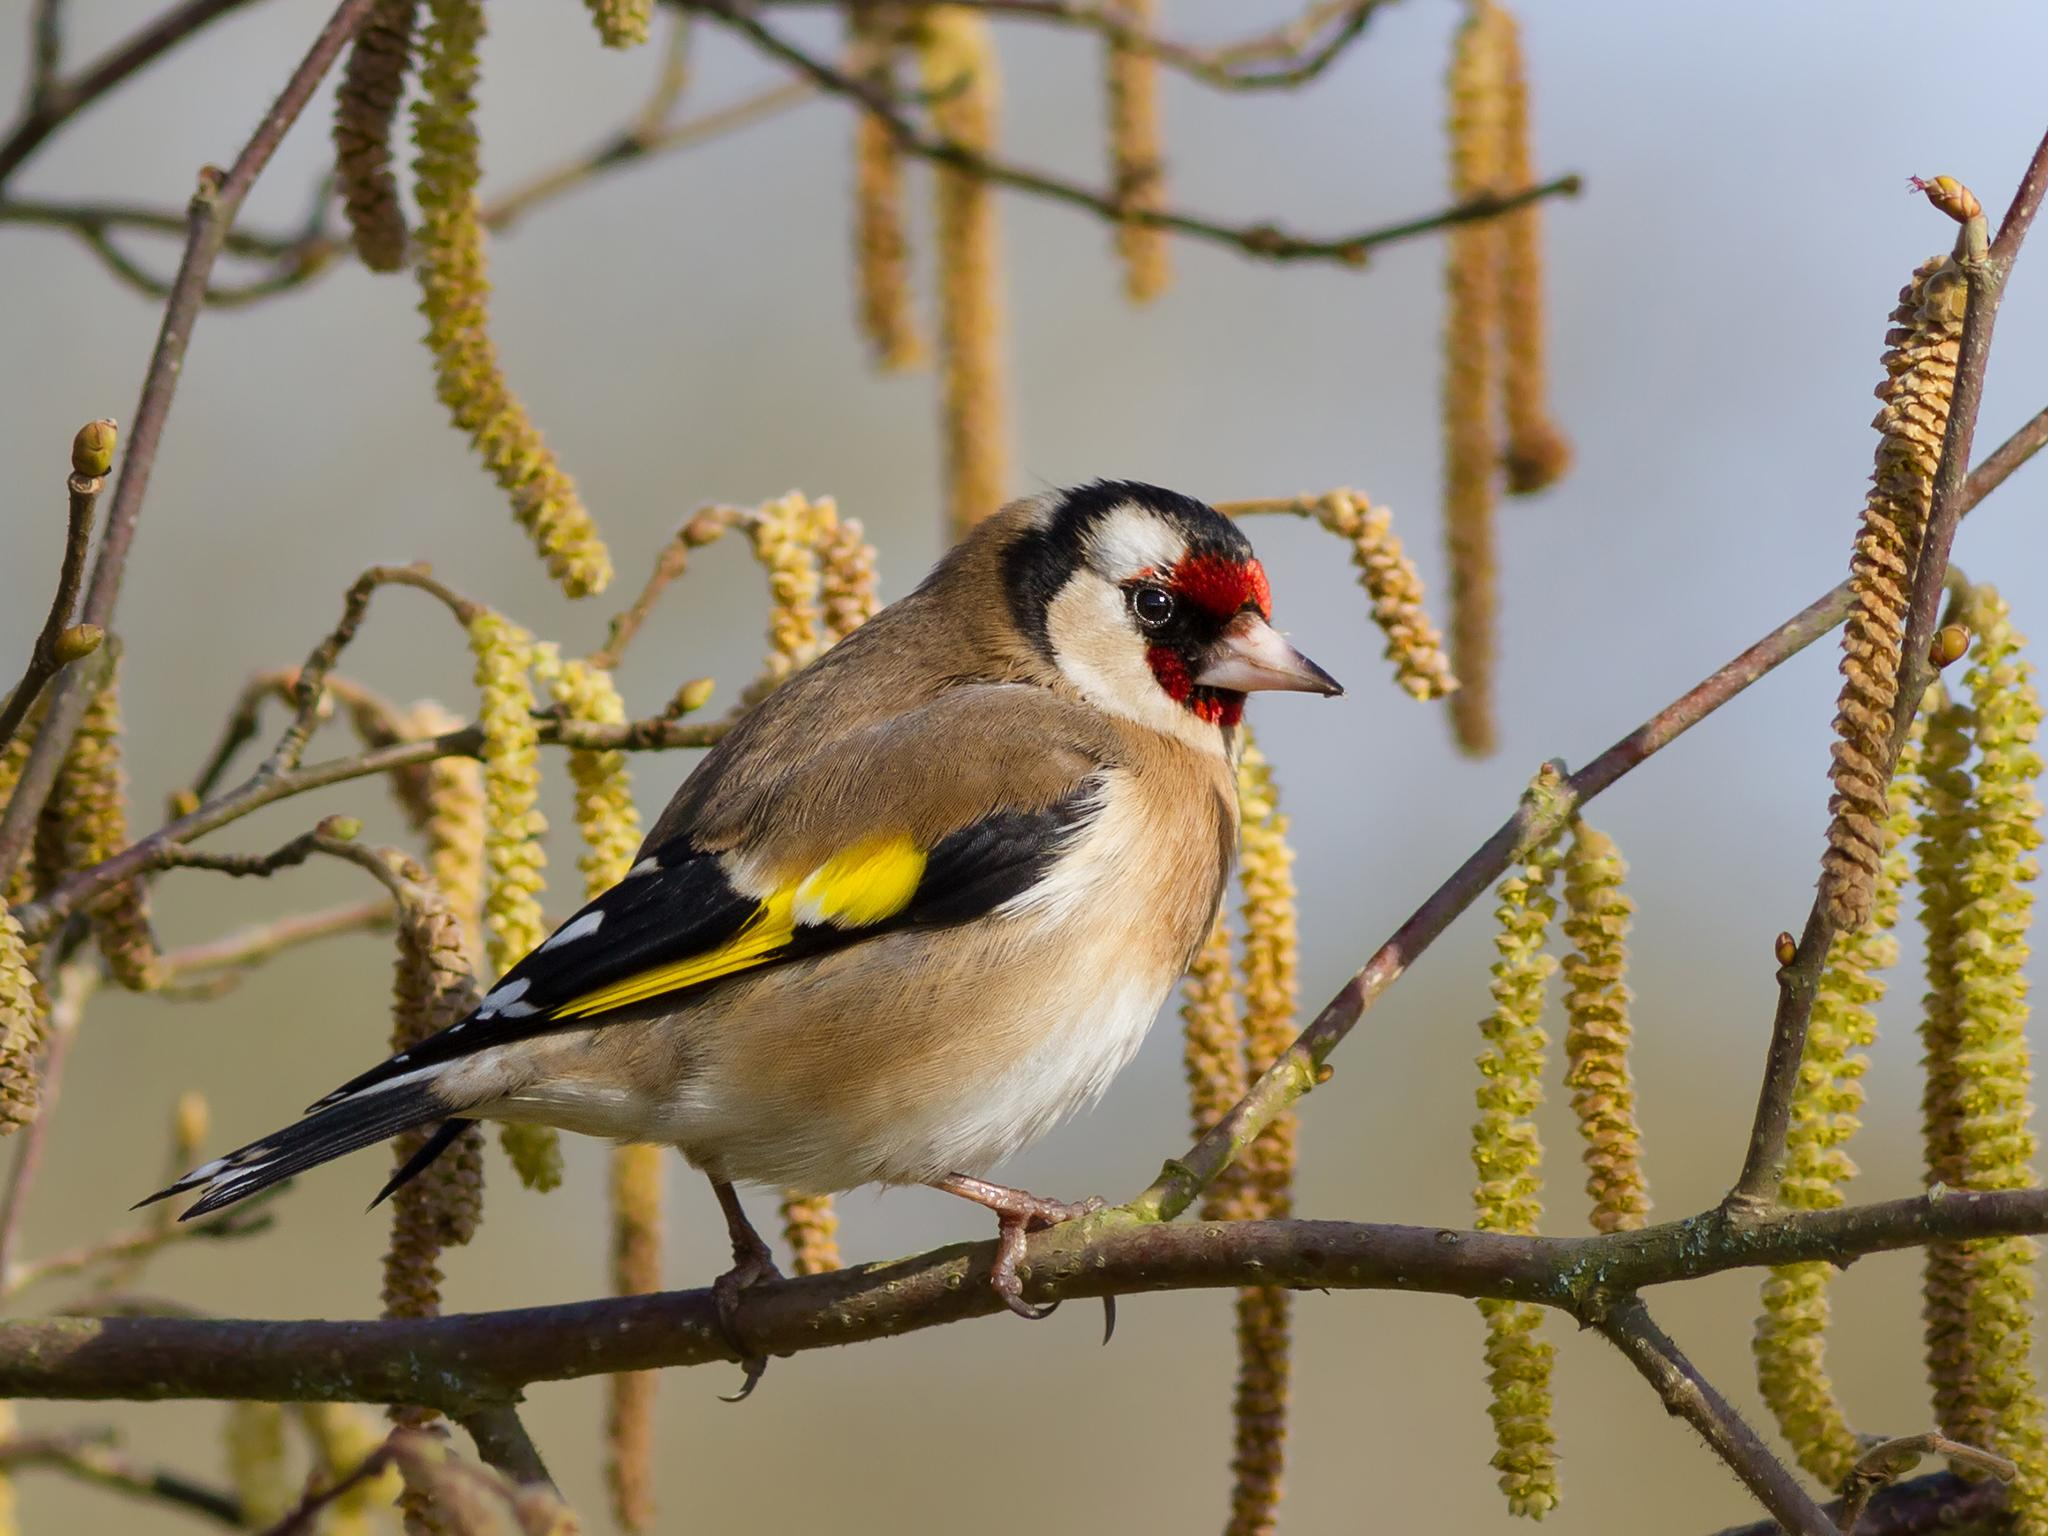 Organised crime finds a new type of contraband: goldfinches